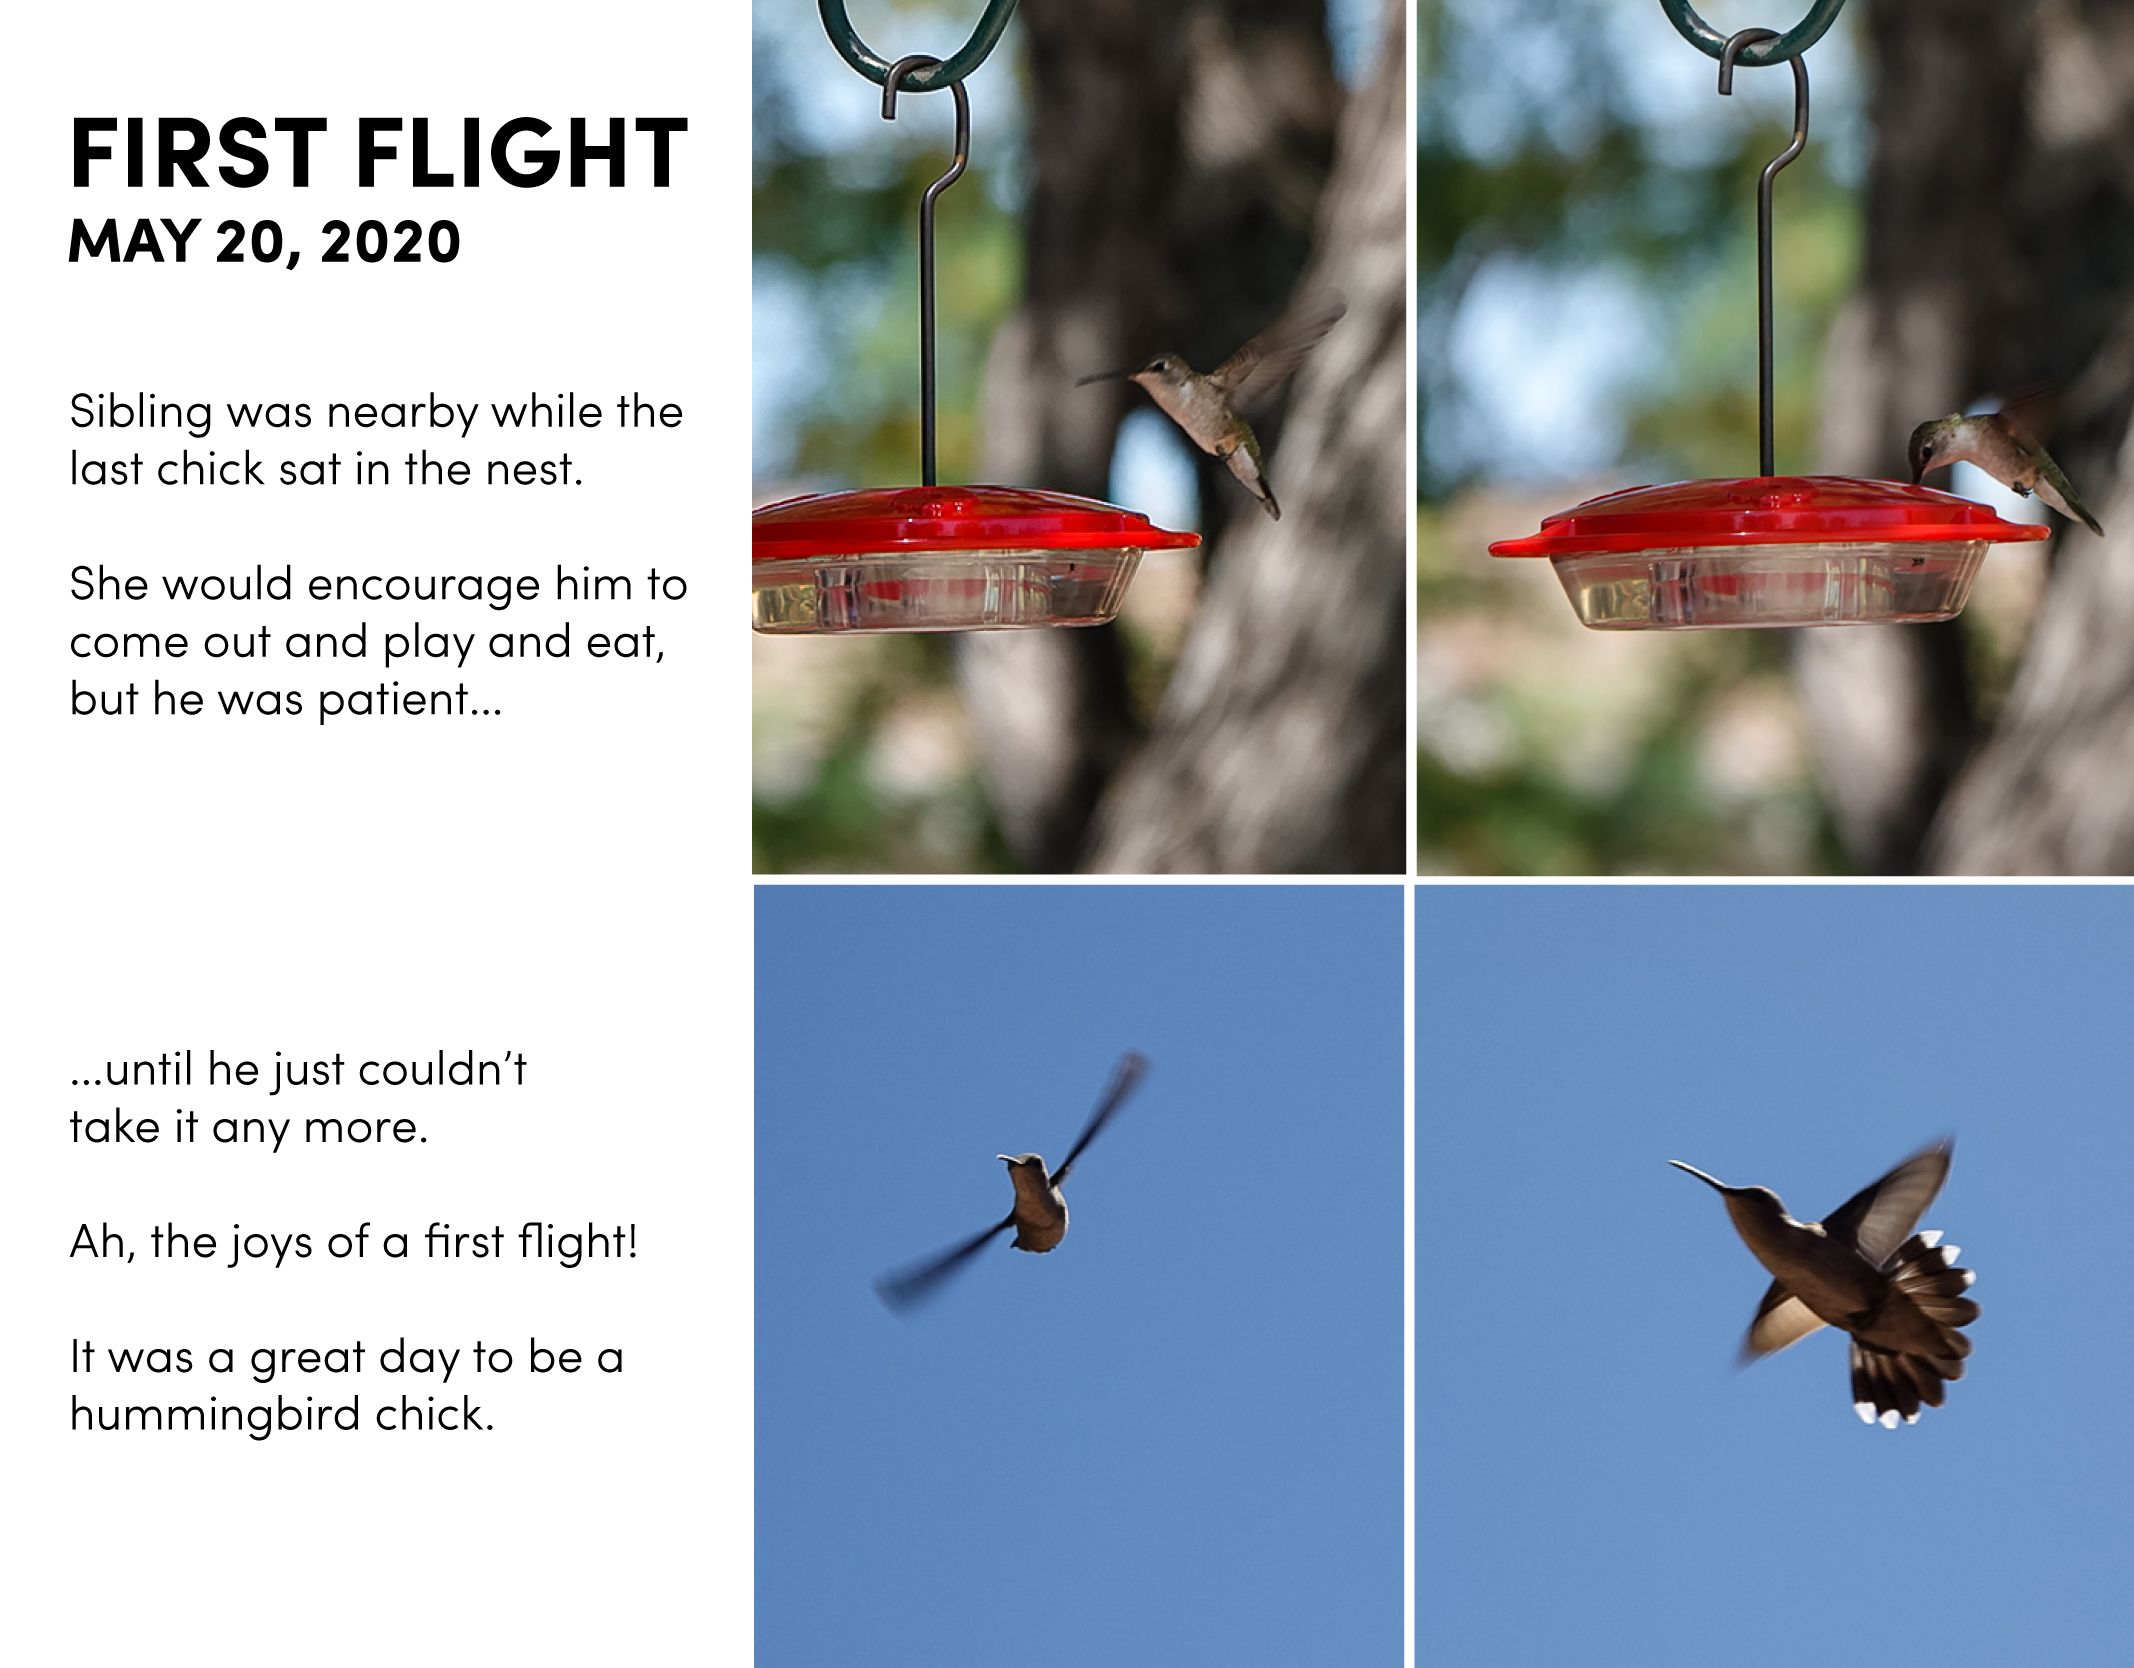 First Flight May 20, 2020. Sibling was nearby while the last chick sat in the nest. She would encourage him to come out and play and eat, but he was patient... (two photos showing chick feeding at hummingbird feeder) ...until he just couldn't take it any more. Ah, the joys of a first flight! It was a great day to be a hummingbird chick (two photos showing chick flying against a blue sky).